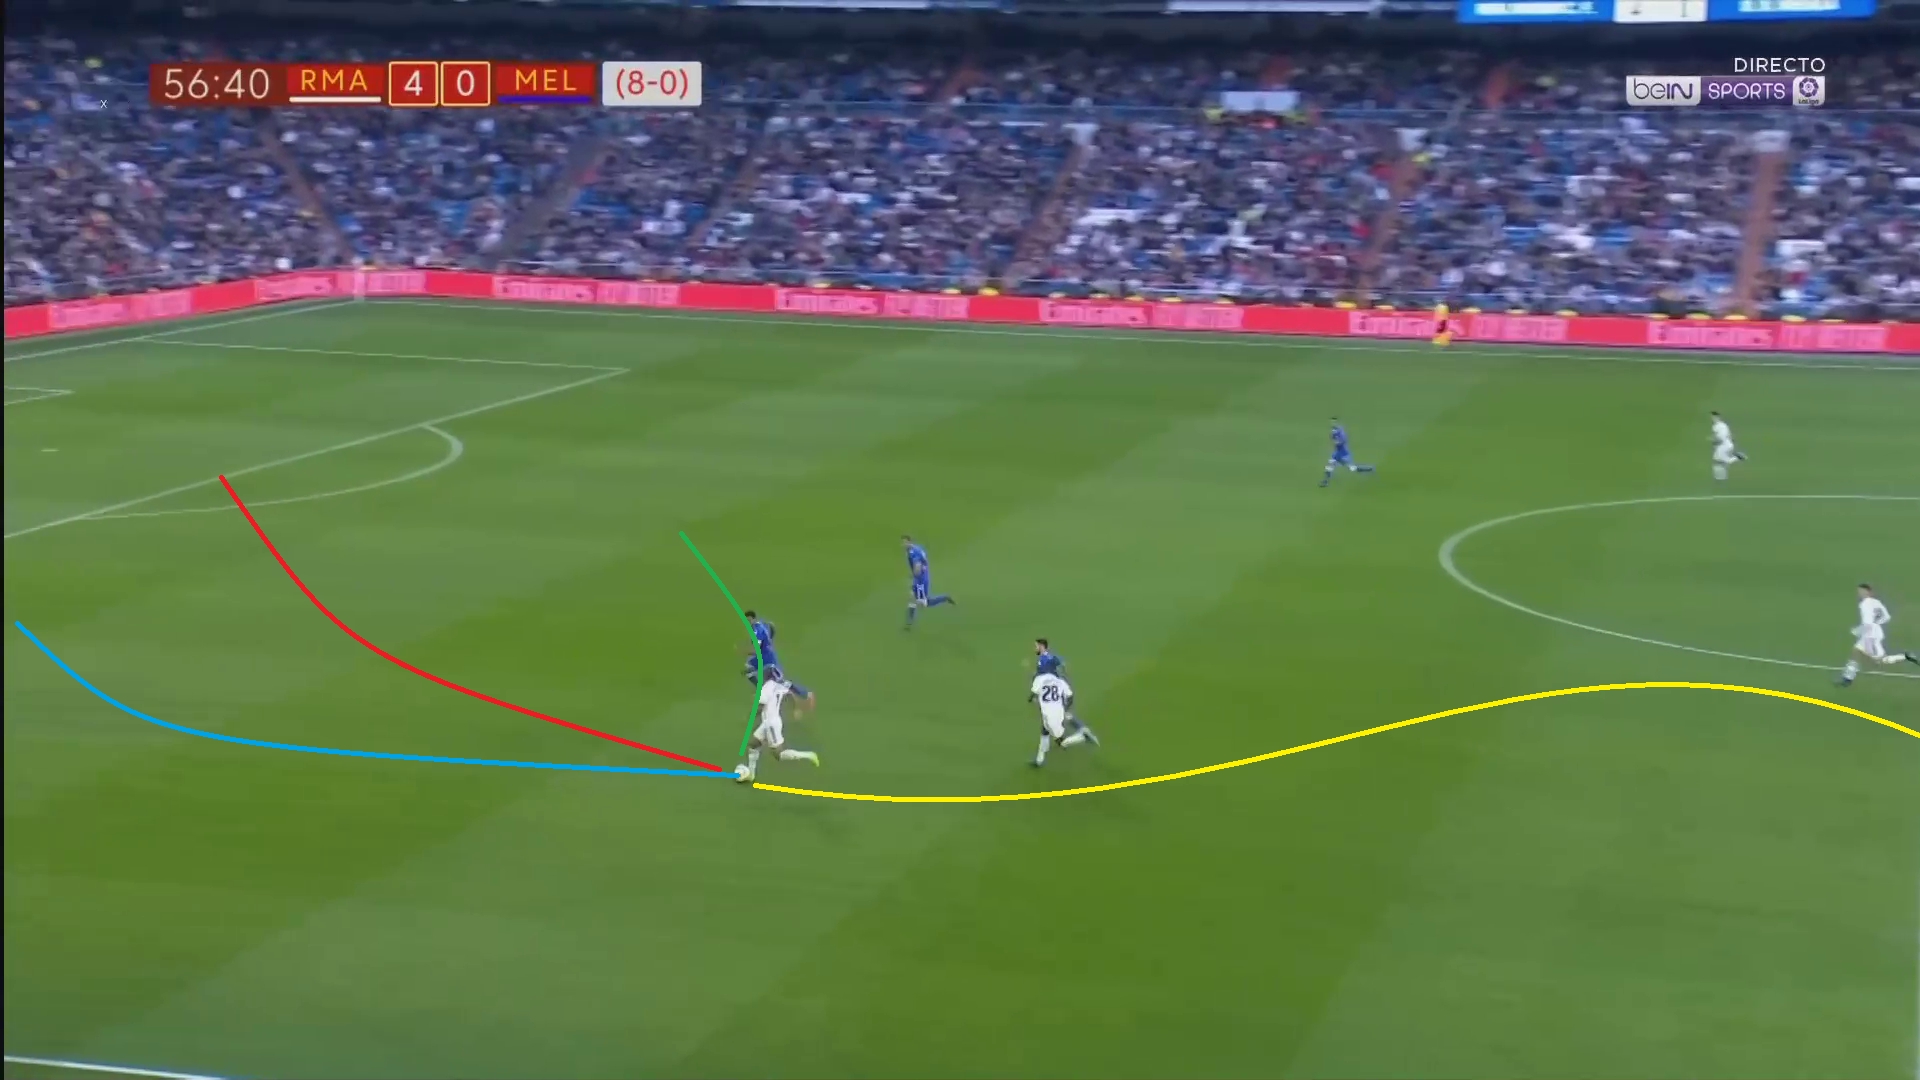 Real Madrid Melilla Copa del Rey Tactical Analysis Statistics